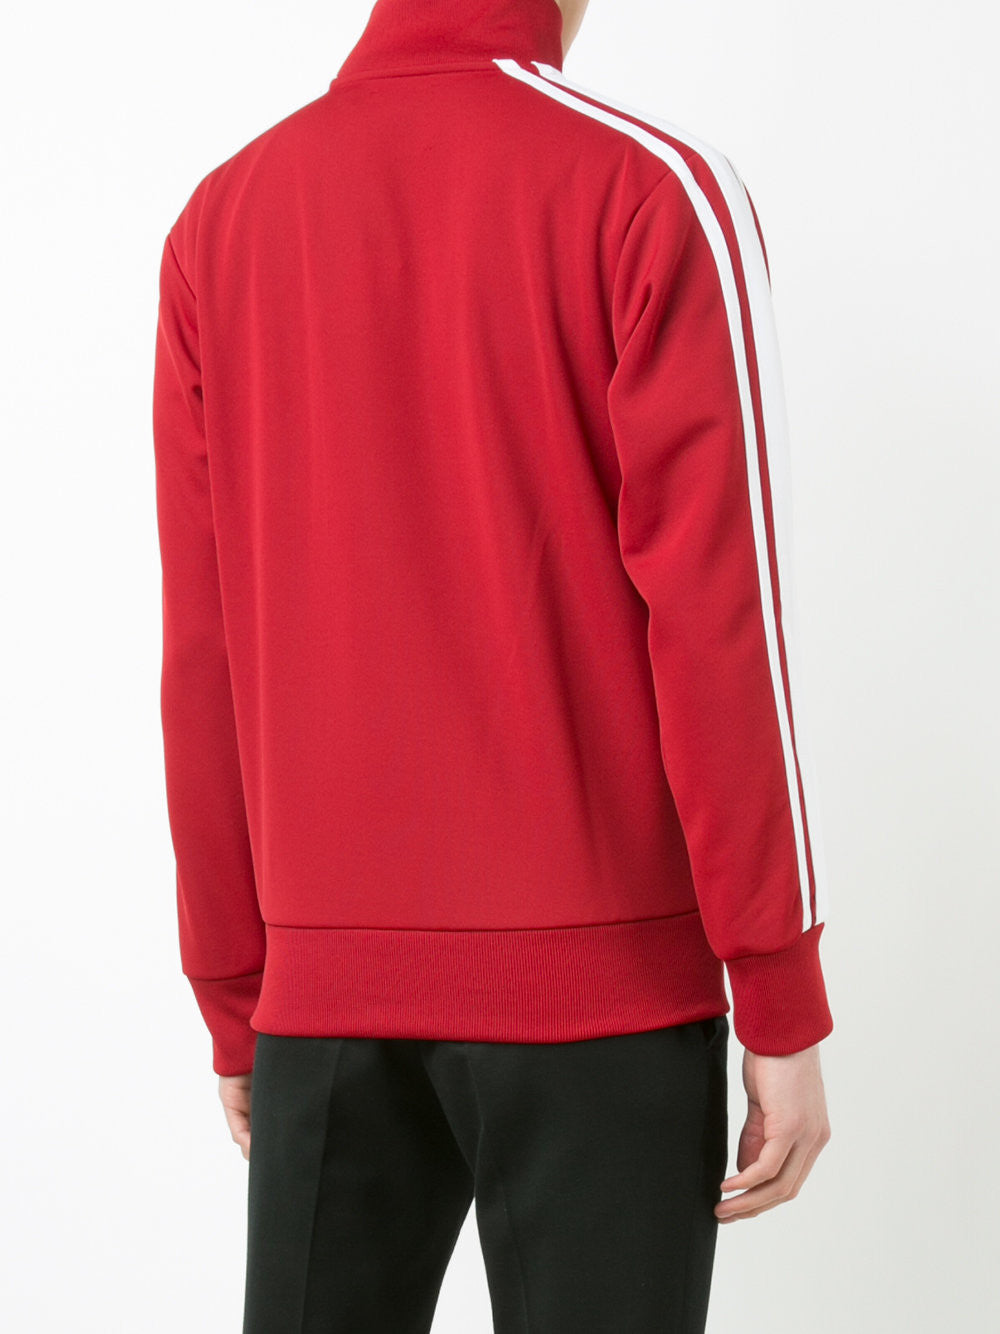 Track Jacket | PMBD001S17089021 CLASSIC